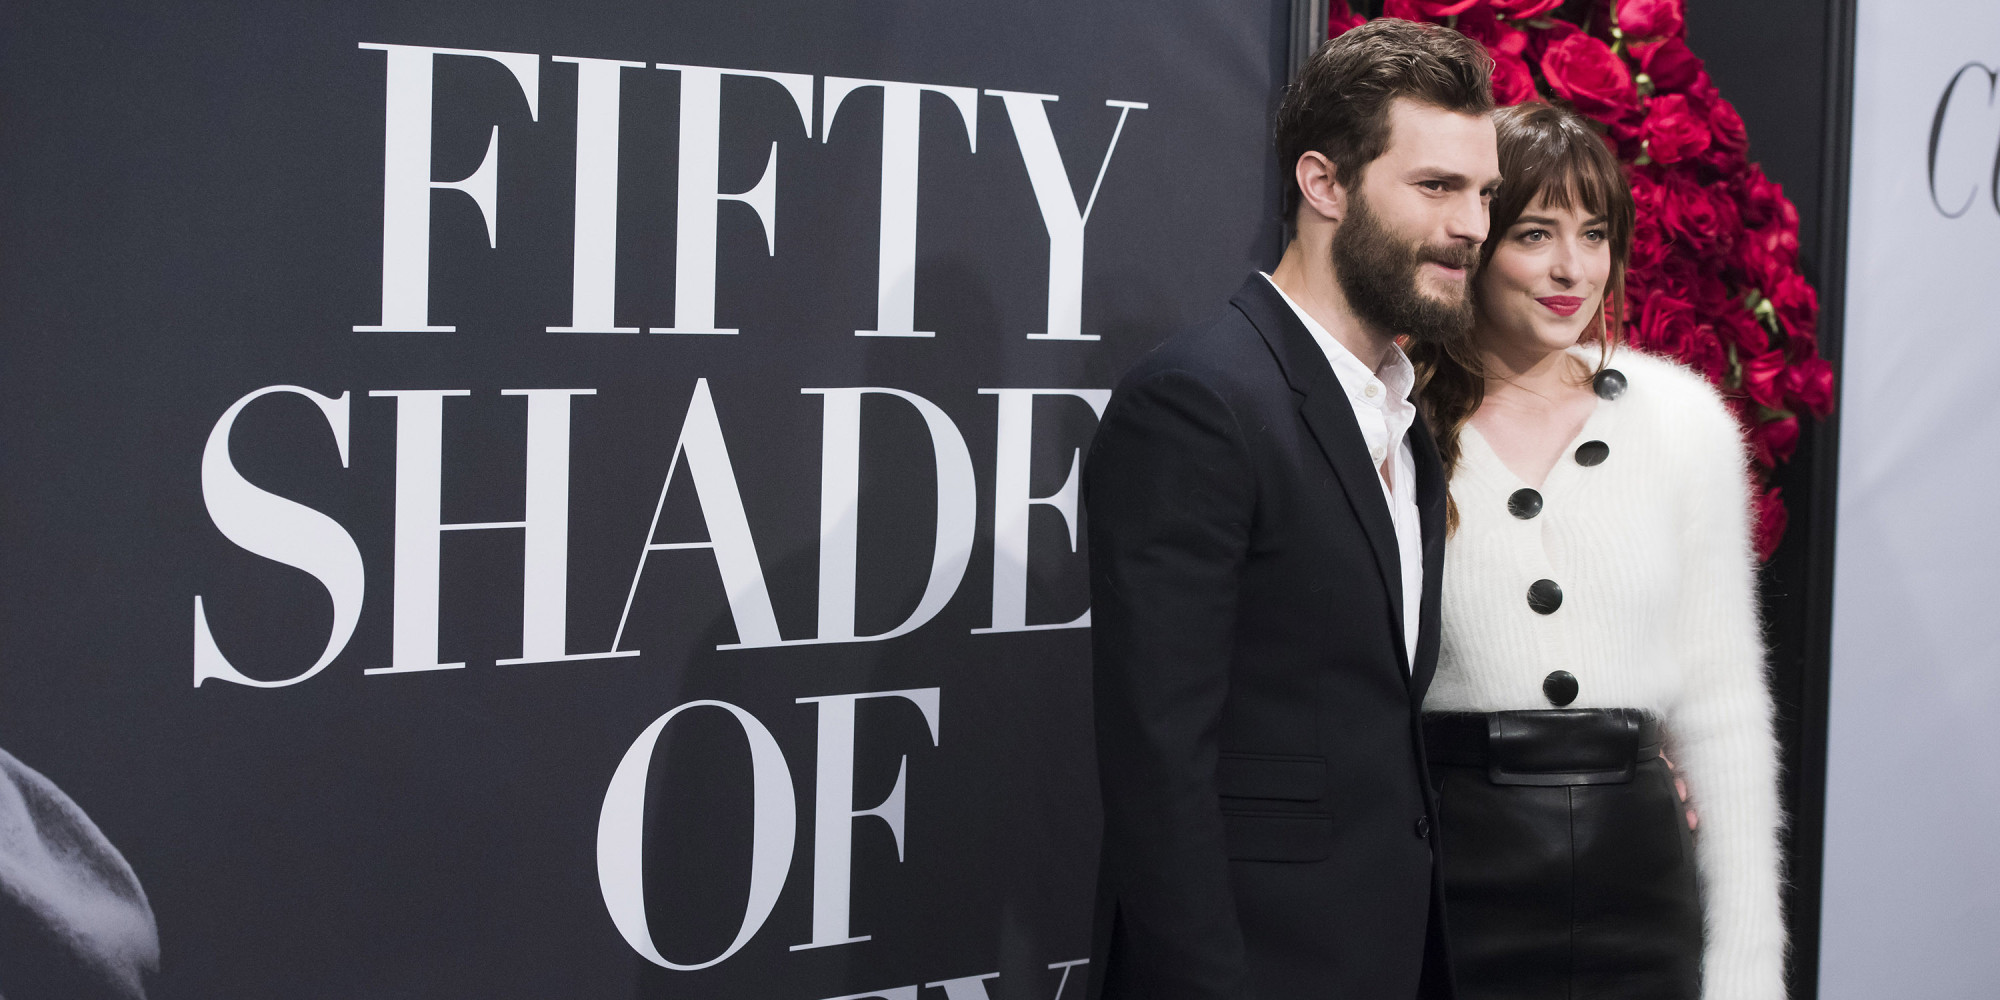 first fifty shades of grey reviews range from half baked excess first fifty shades of grey reviews range from half baked excess to fascinating the huffington post